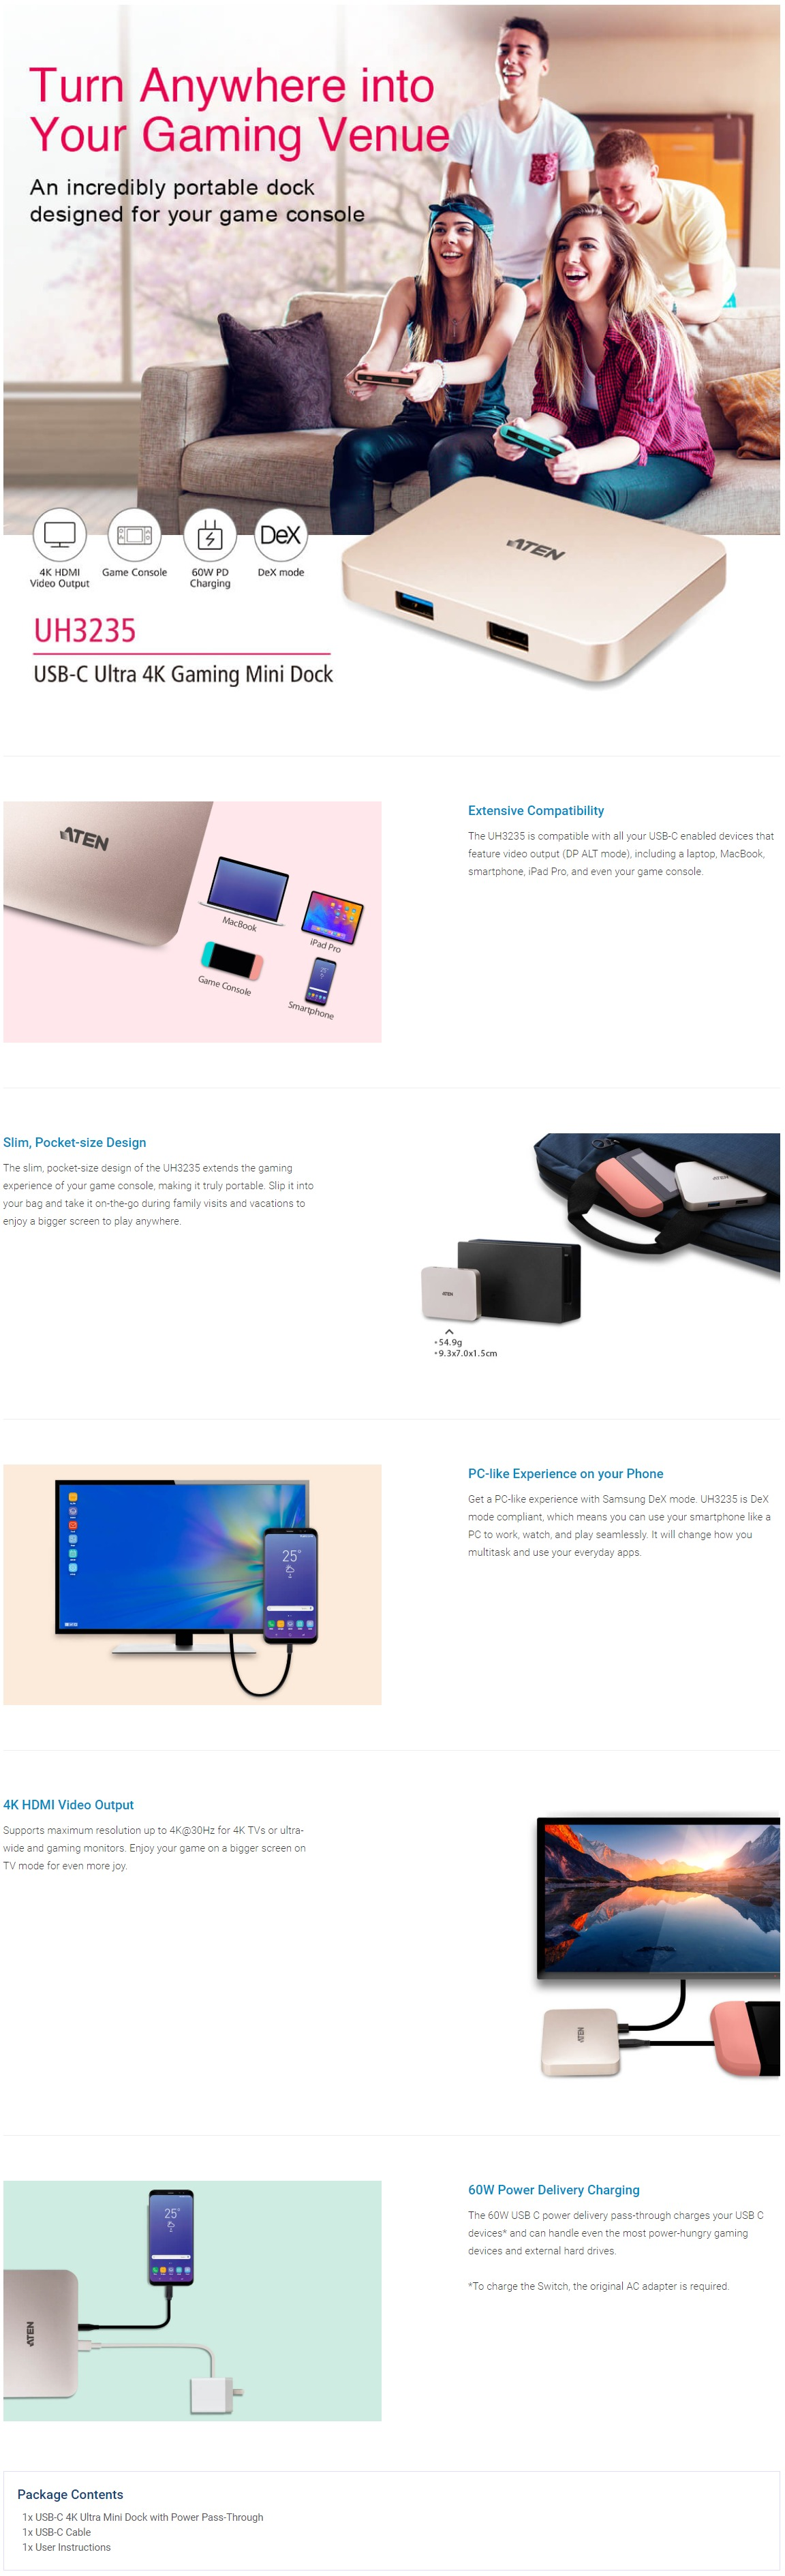 A large marketing image providing additional information about the product ATEN USB-C 4K Ultra Mini Dock with Power Pass-through - Additional alt info not provided